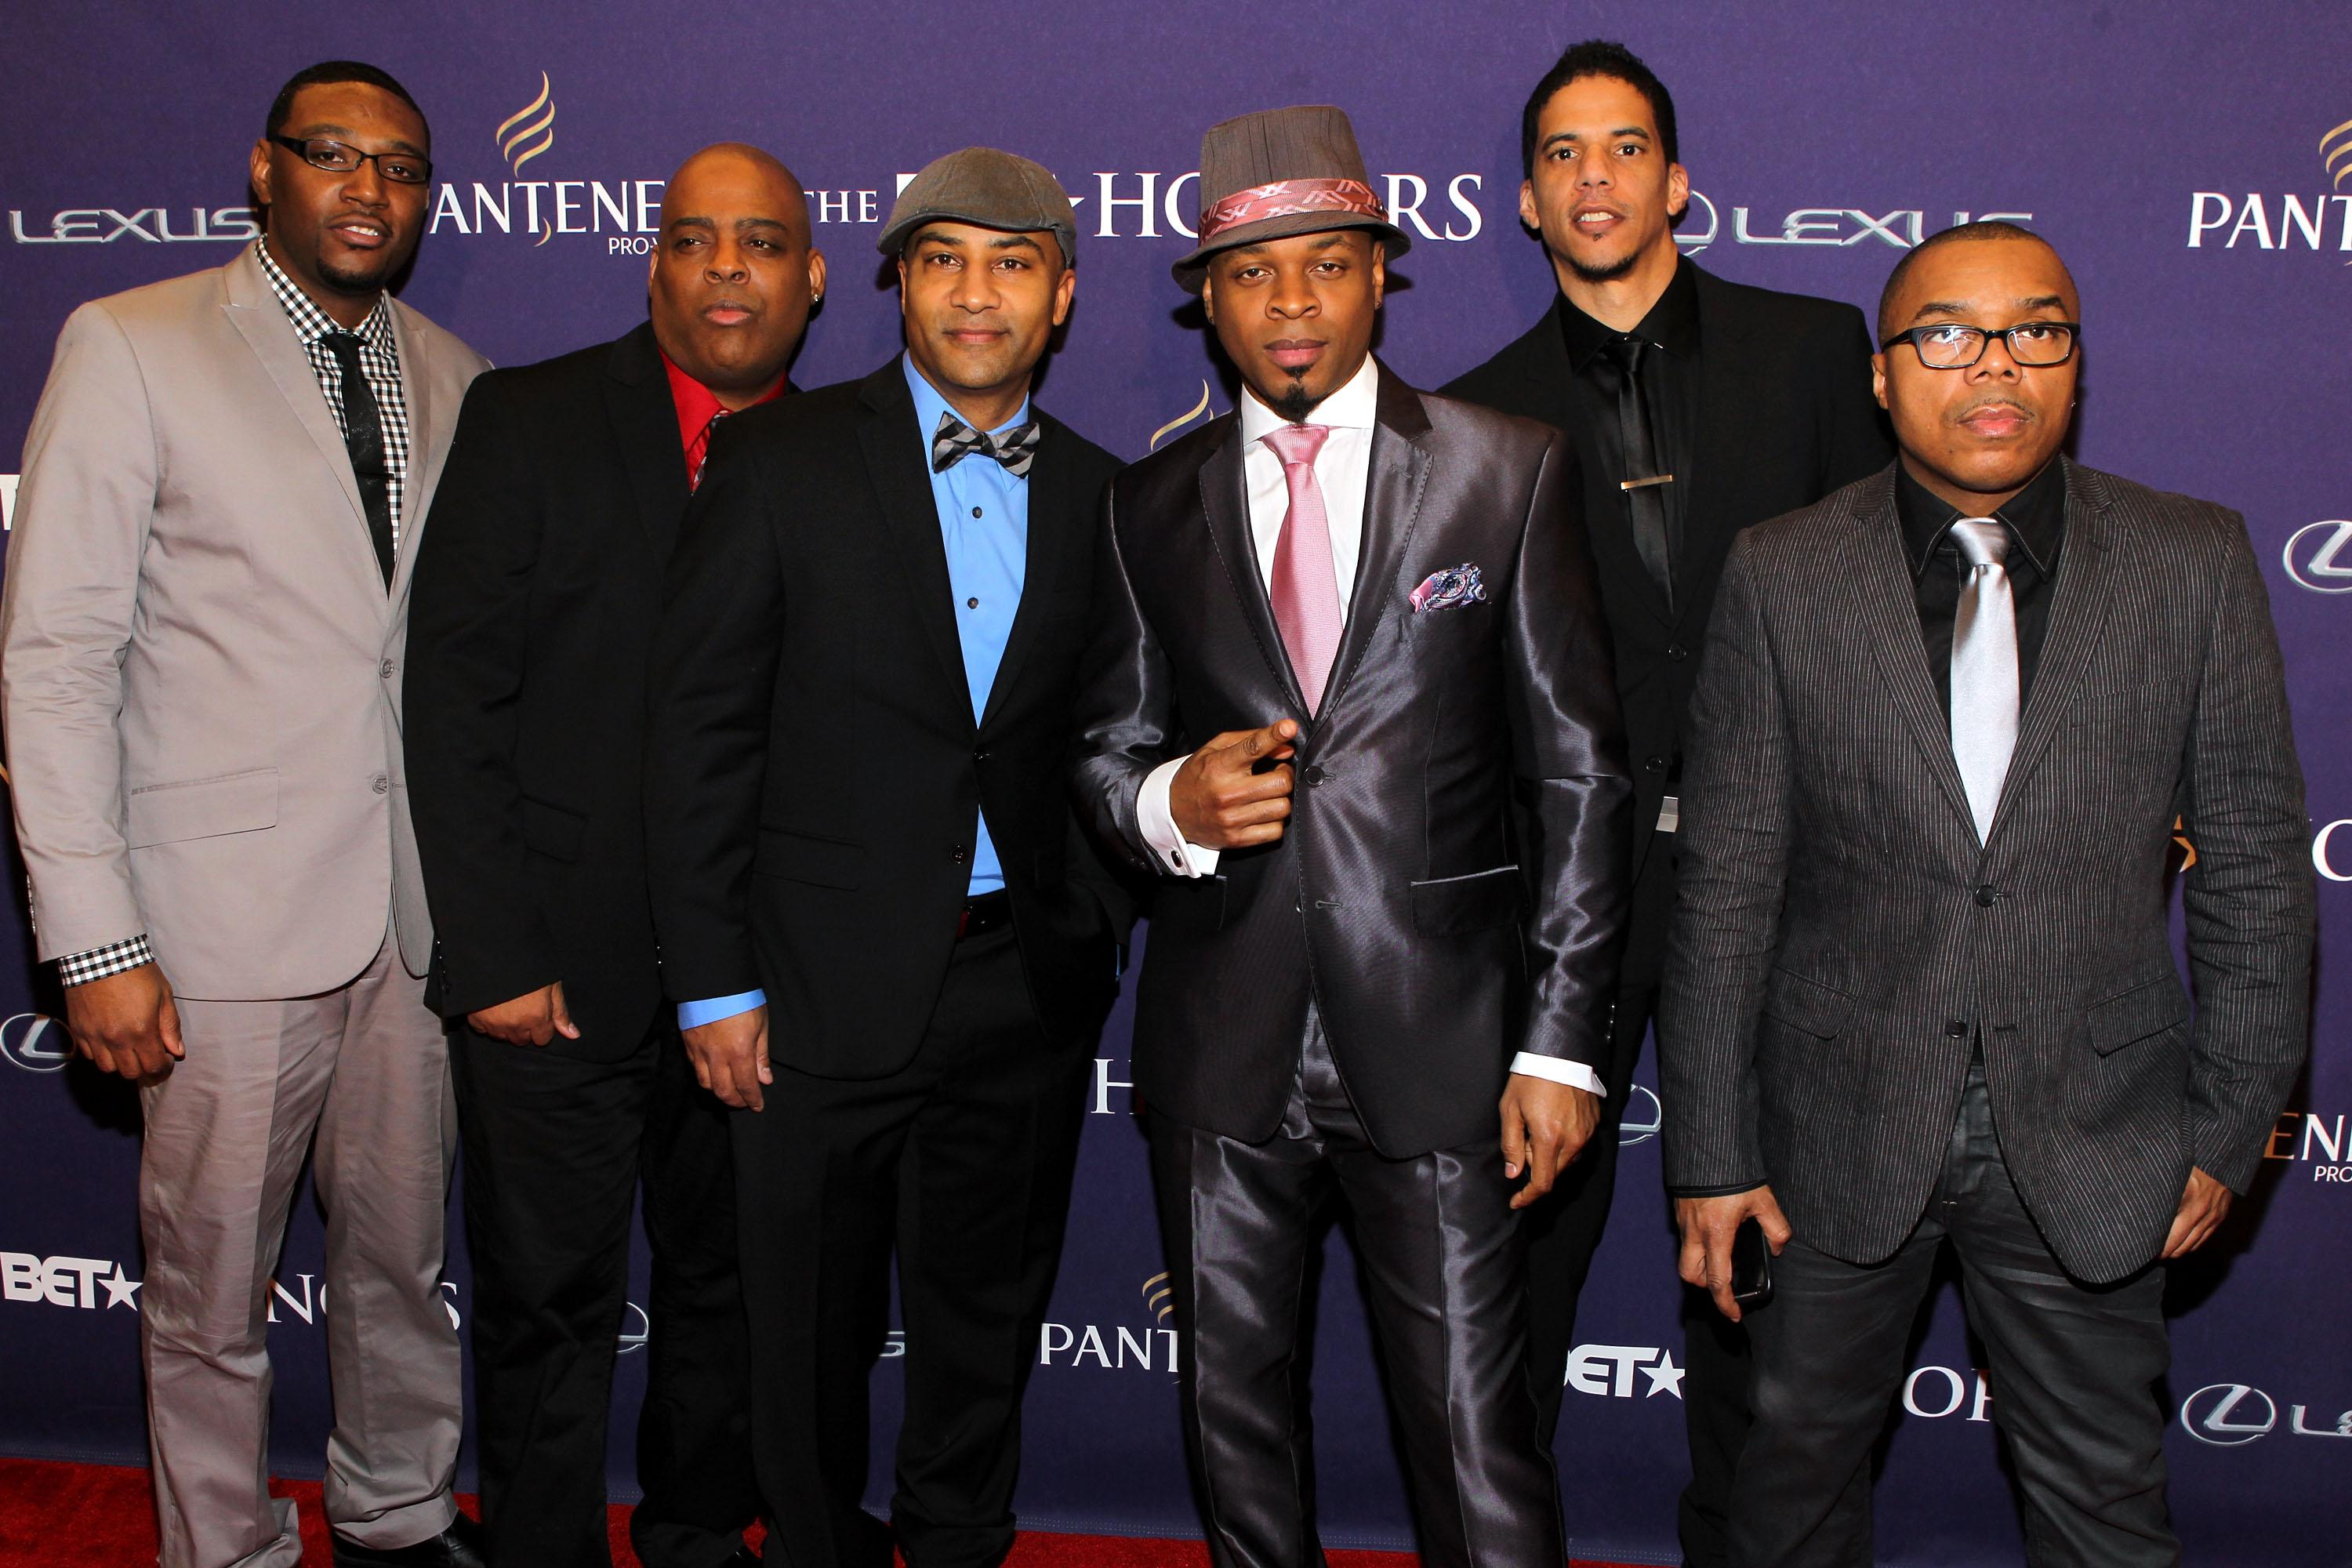 Bet honors 2018 mint condition what kind of man